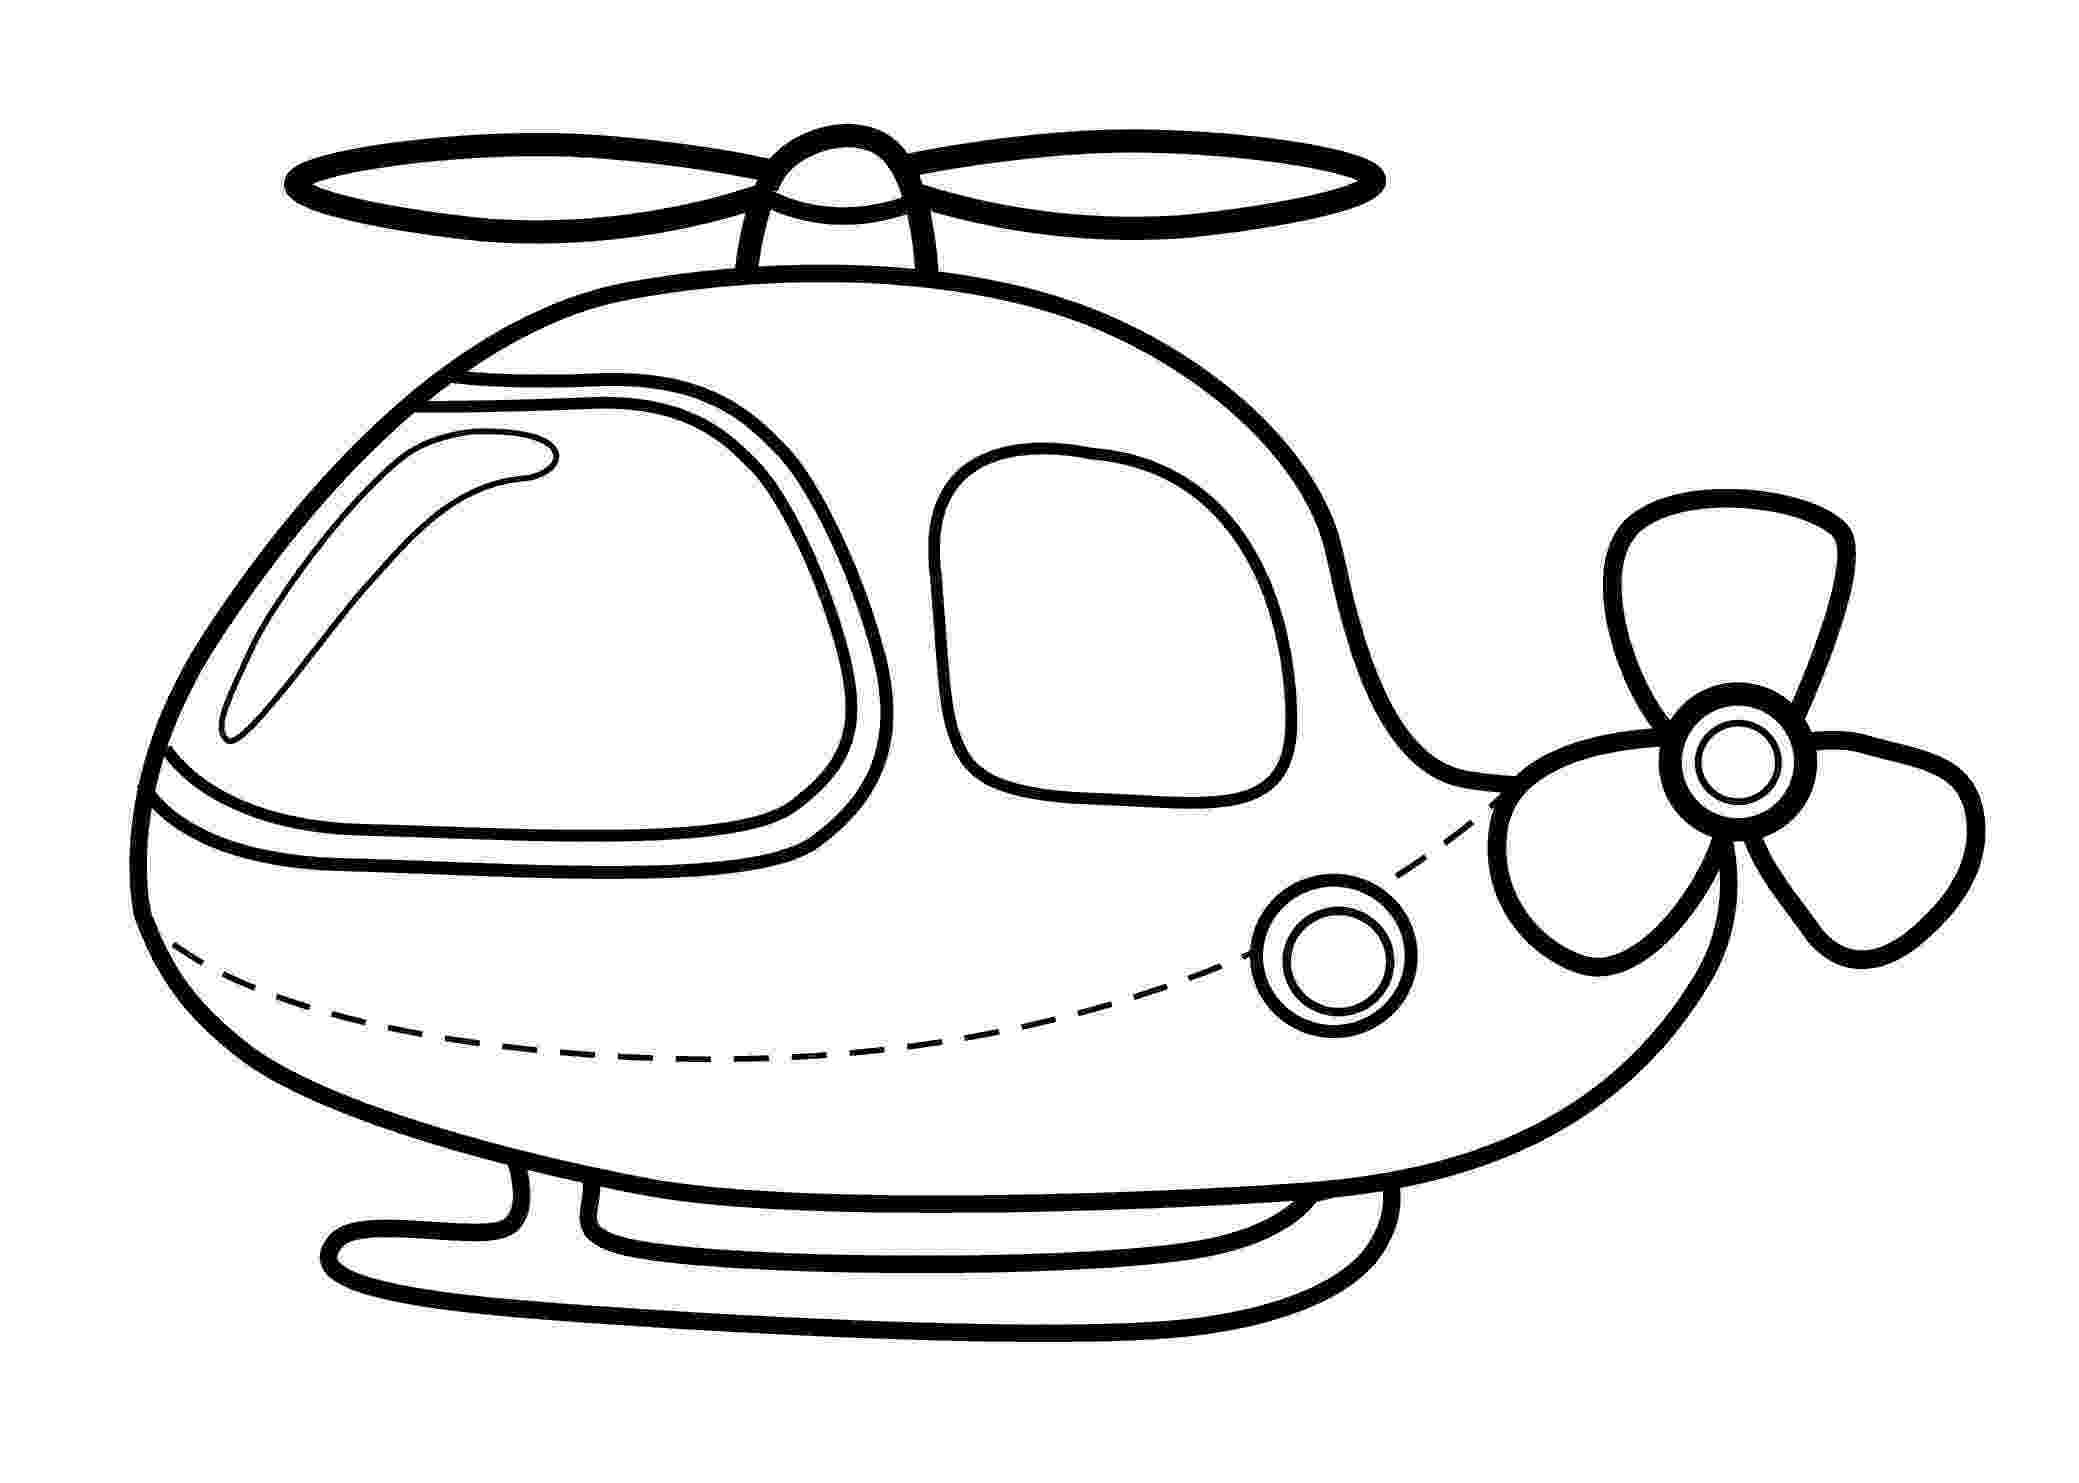 helicopter colouring free printable helicopter coloring pages for kids colouring helicopter 1 2